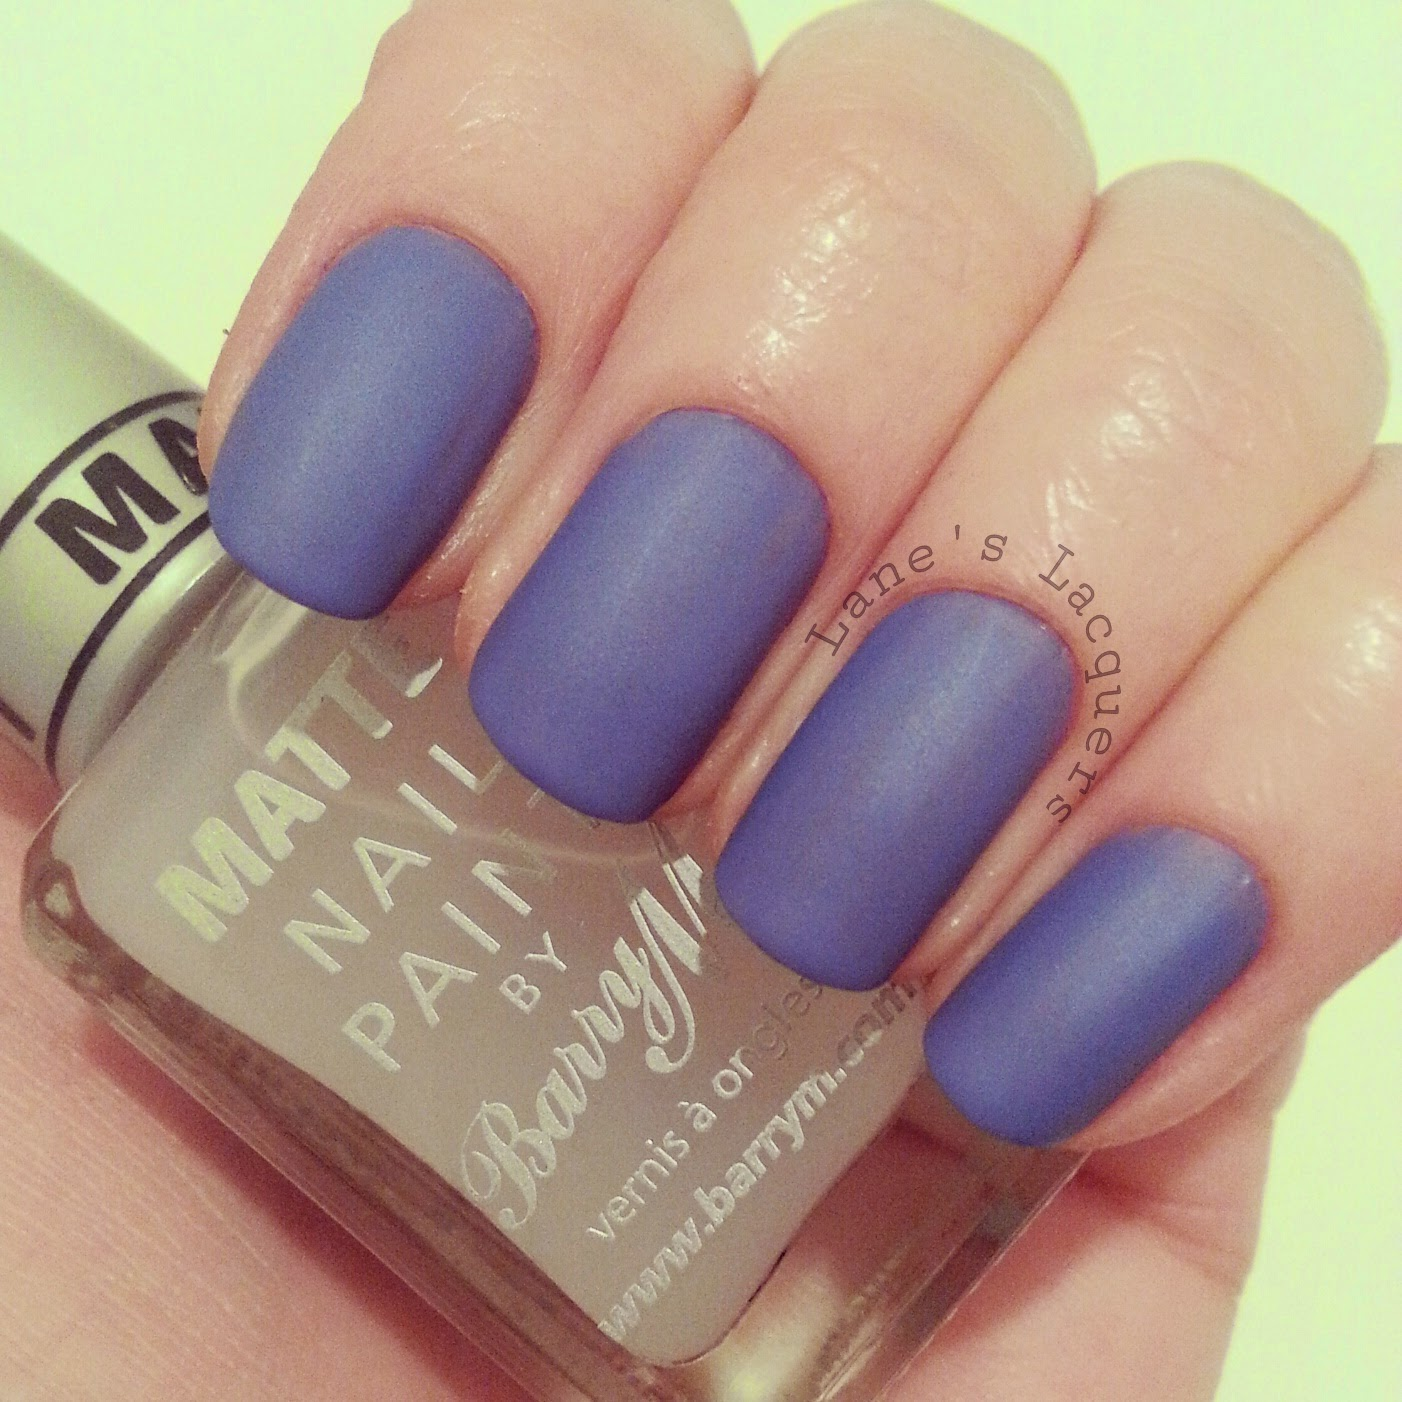 barry-m-bikini-and-matte-topcoat-swatch-nails